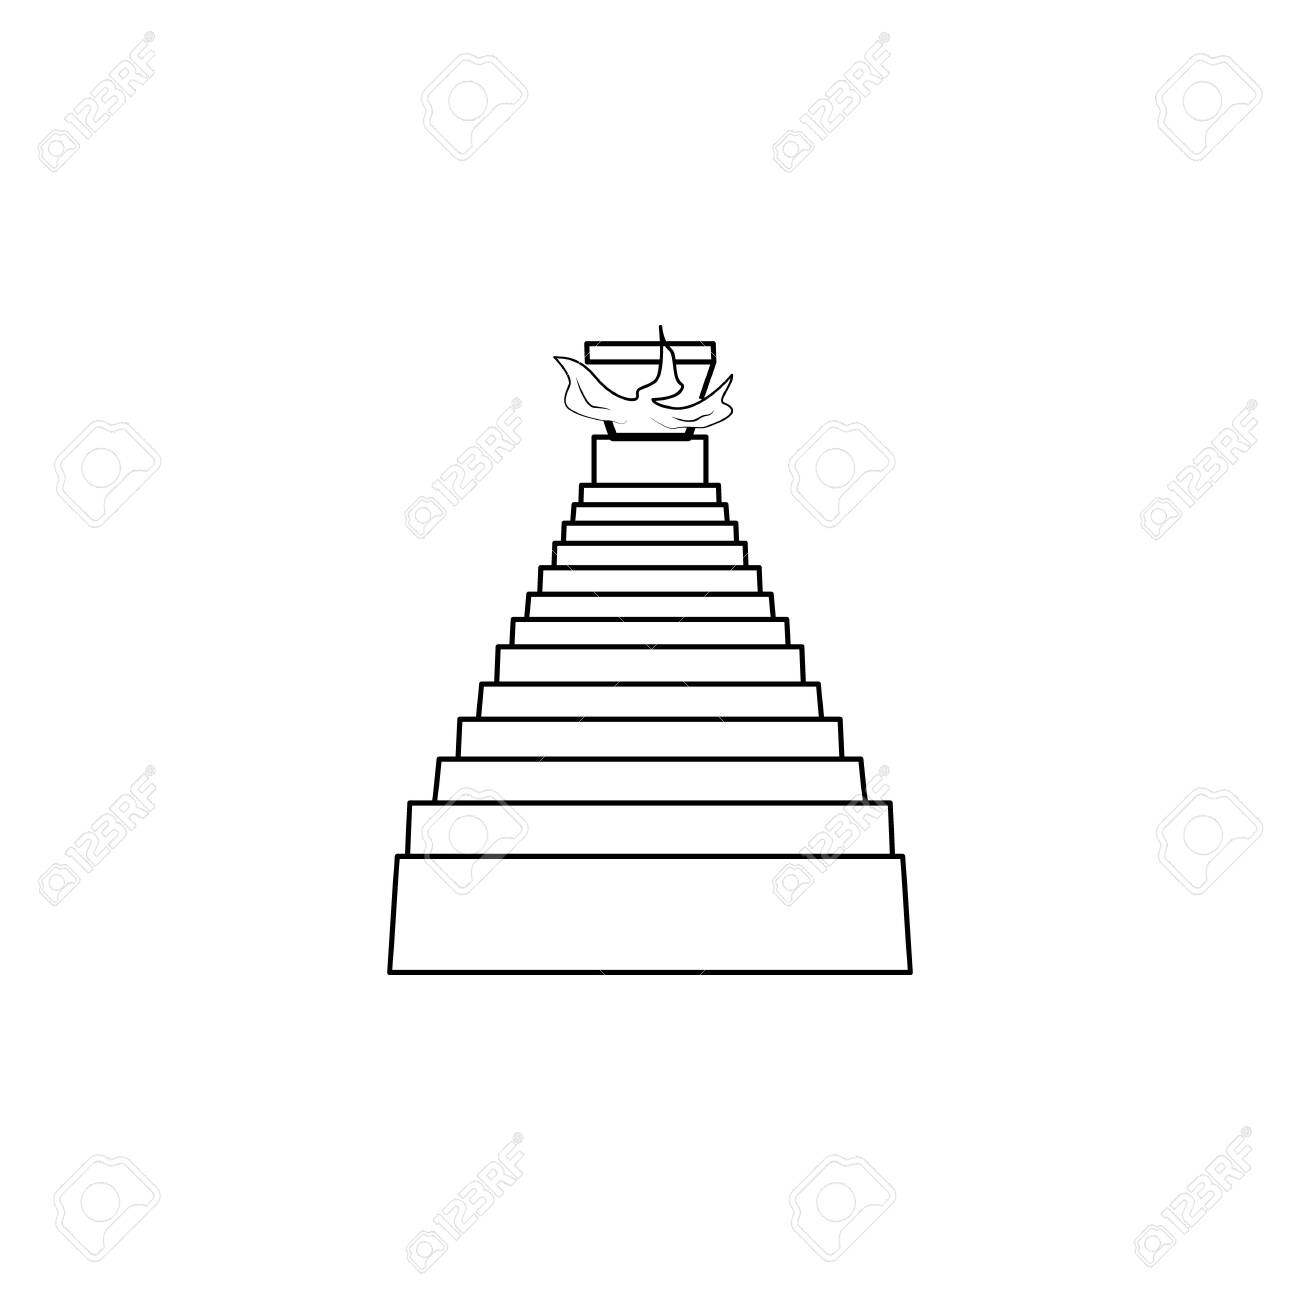 stairs to hell icon. Stairs in our life Icon. Premium quality graphic design. Signs, symbols collection, simple icon for websites, web design, mobile app on white background - 134084597